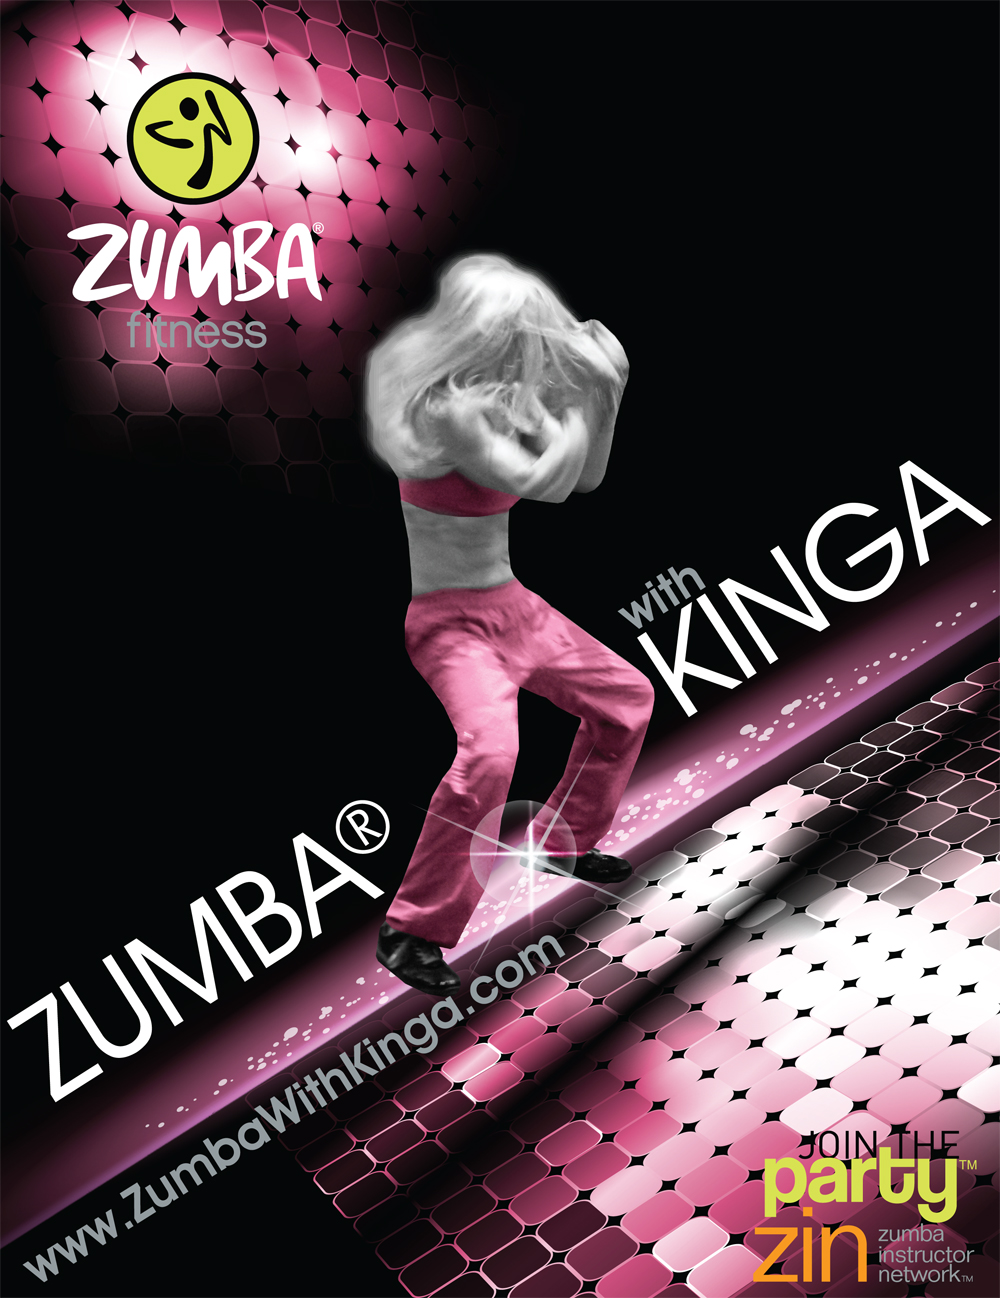 Long Island Zumba Diva - European American Artist Zumba Dancer Edina Kinga Agoston